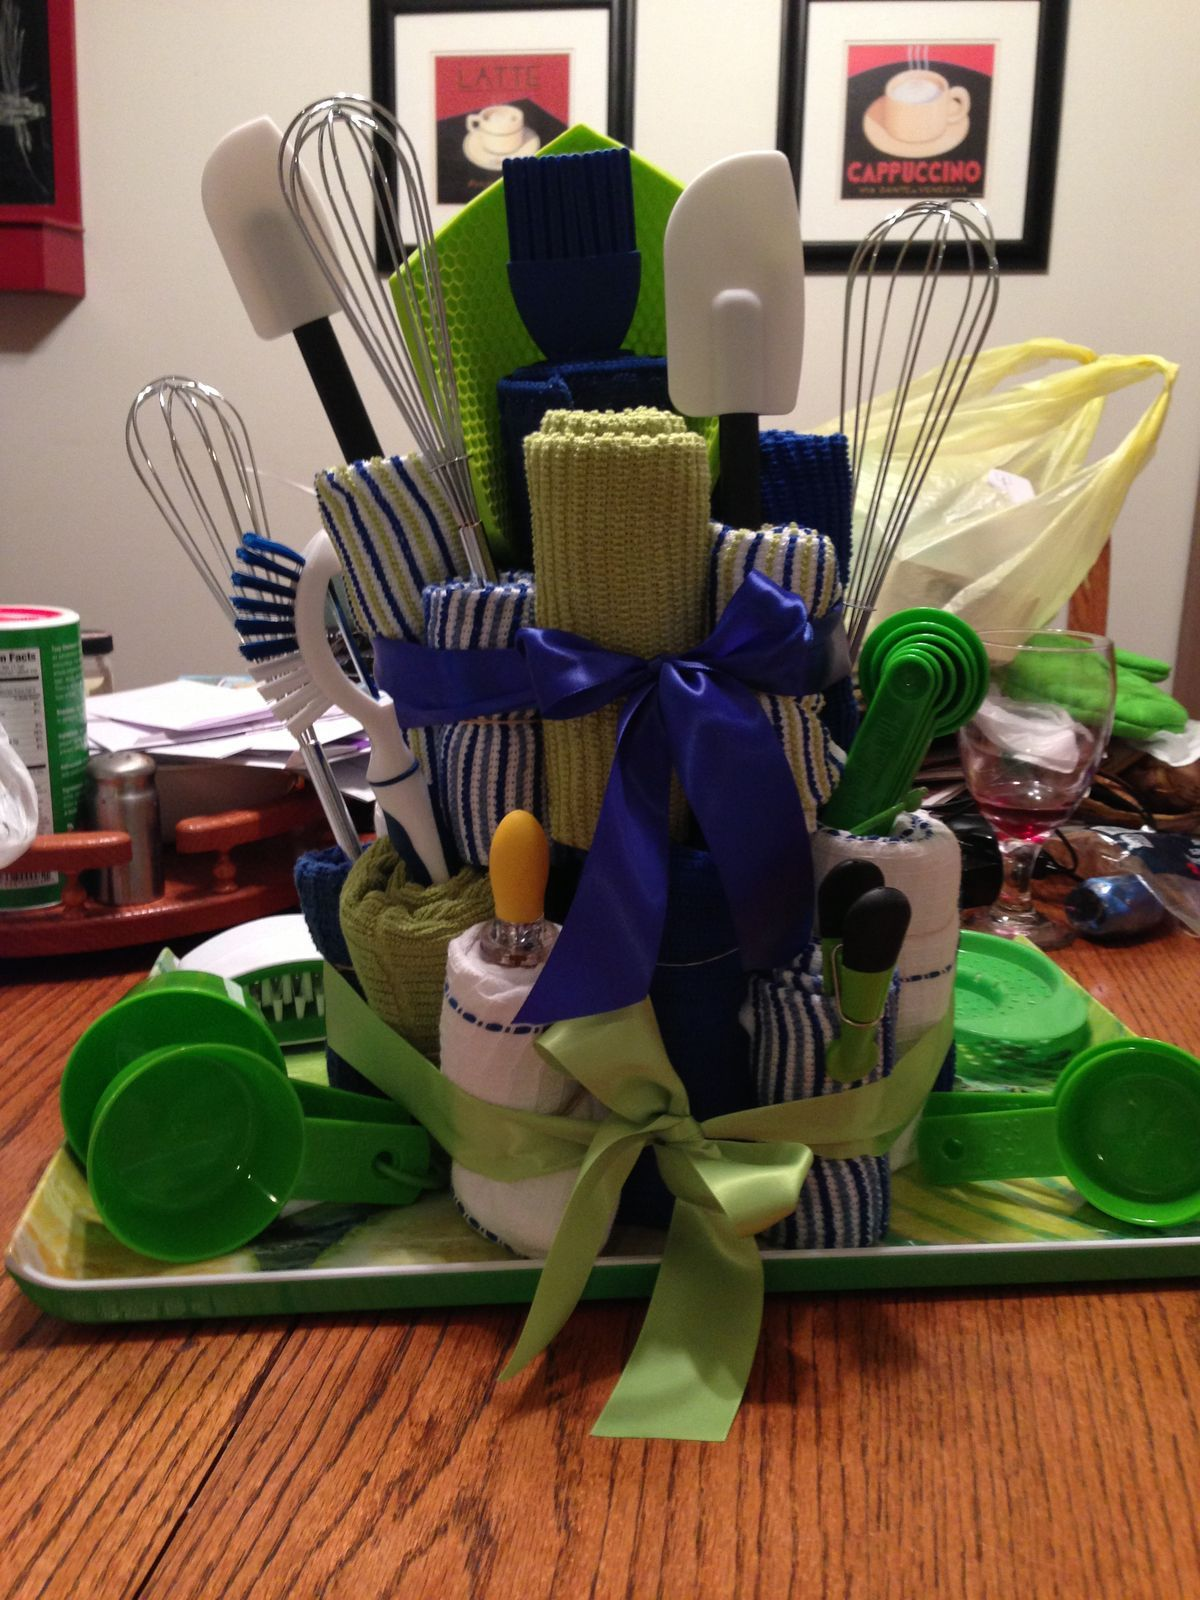 Best Kitchen Gift Images Of Diy Wedding Gift Basket Kcraft